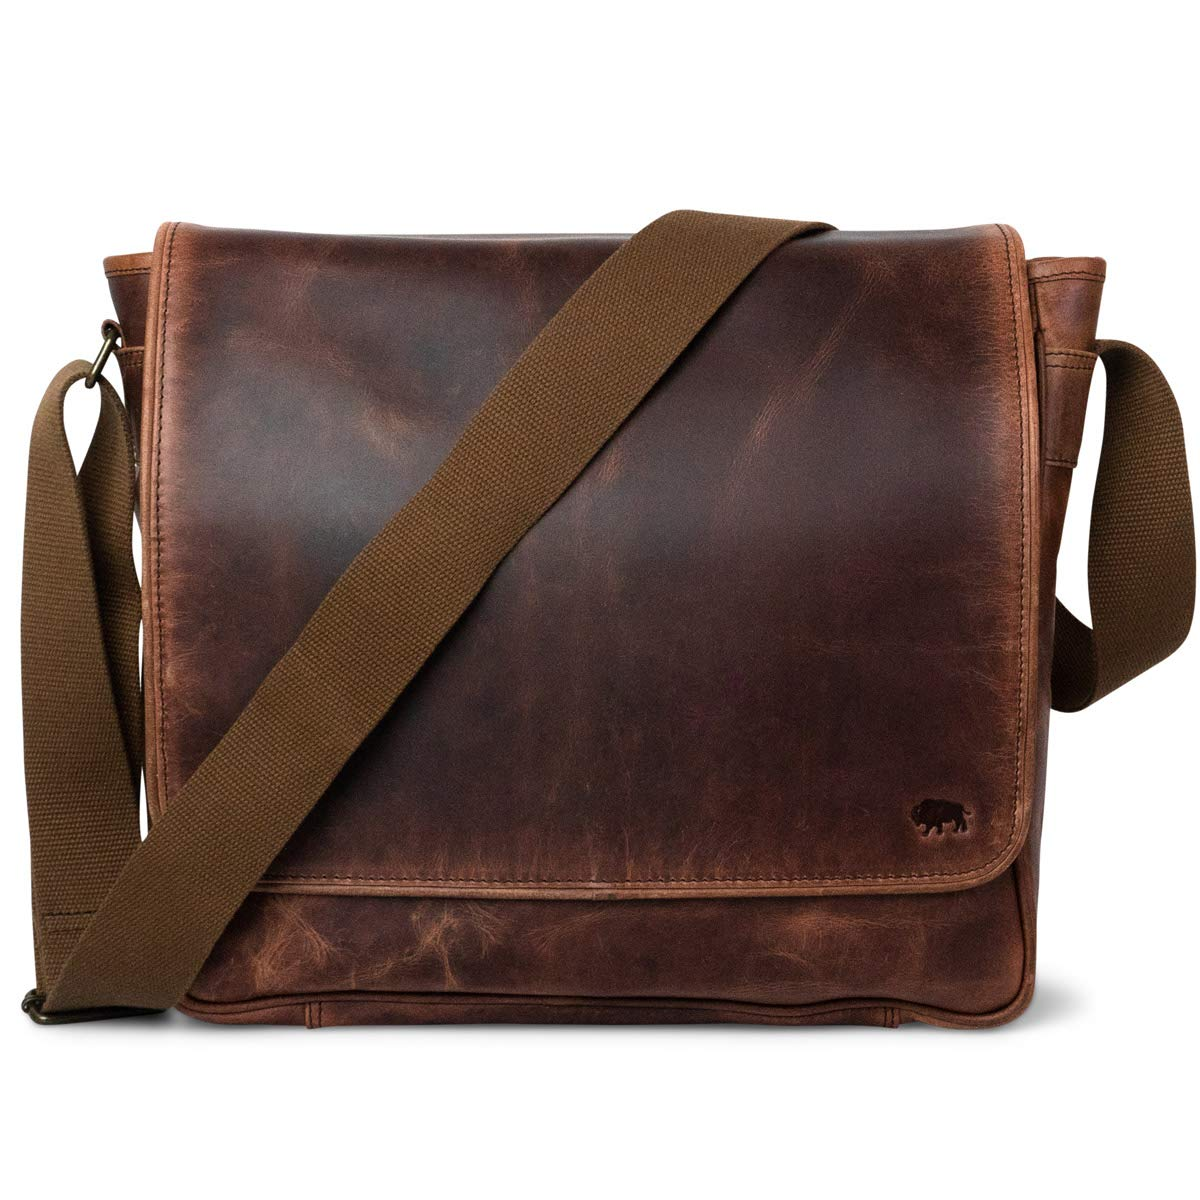 Genuine Buffalo Full-Grain Leather Satchel Messenger Bag for Men | Roosevelt by Buffalo Jackson | Fits 13'', 14'', 15'' Laptop Computers | Color: Dark Oak